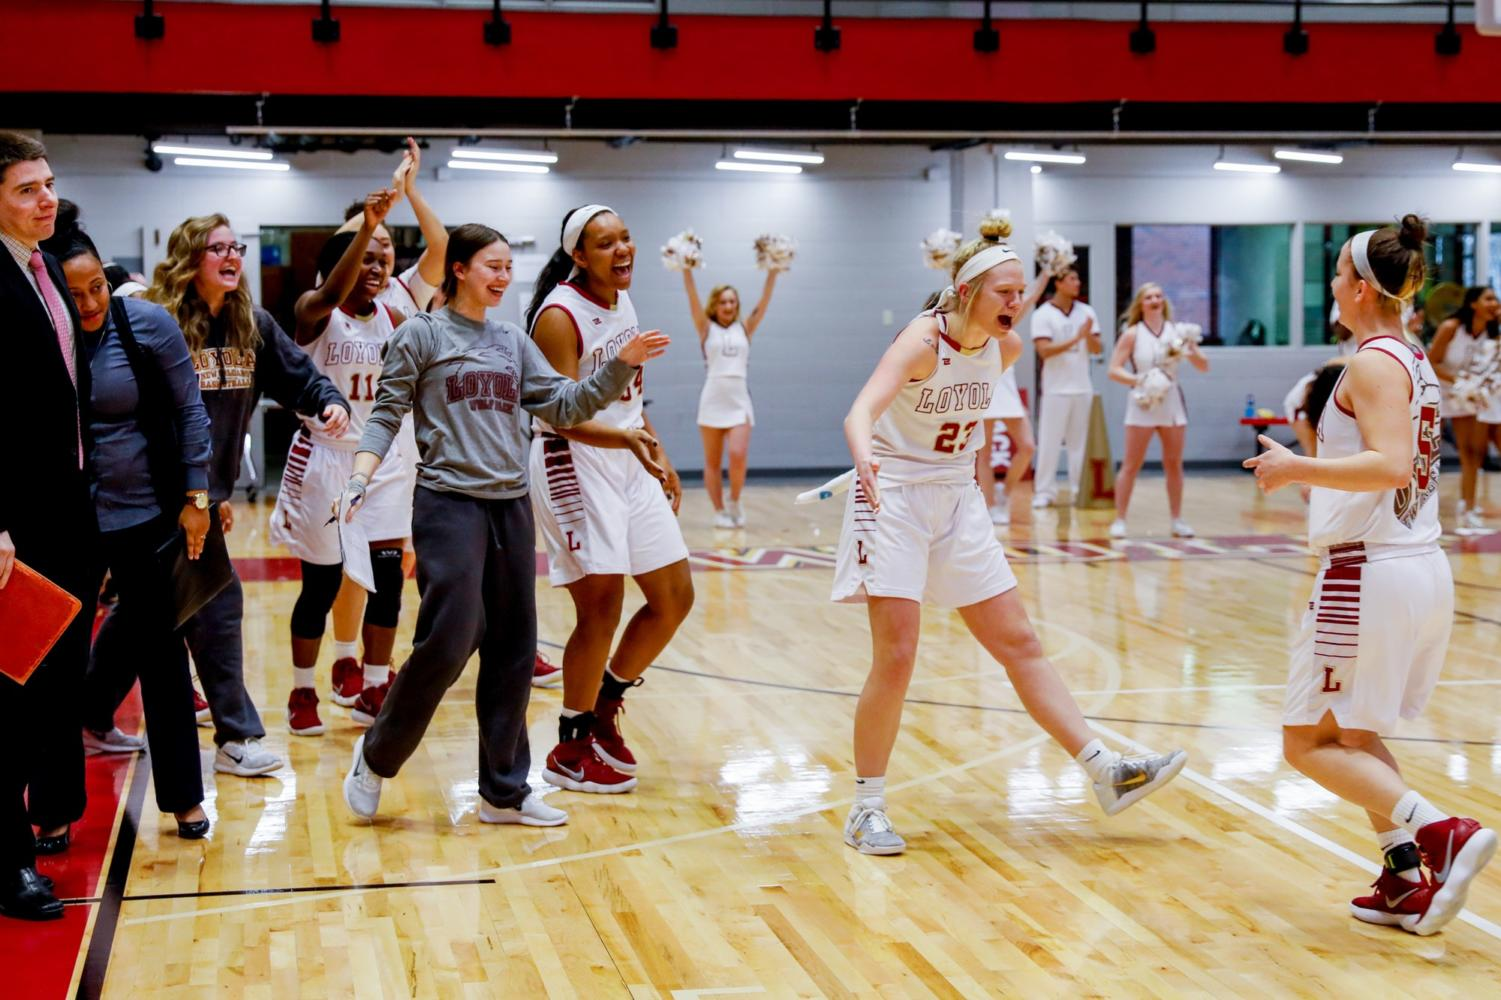 Junior, #23 Megan Worry celebrating with, freshman, #5 Savannah Ralph after the team won the game against Faulkner University in the Den on Jan. 20, 2018. The team is now 13-4 for the season. Photo credit: Jules Lydon